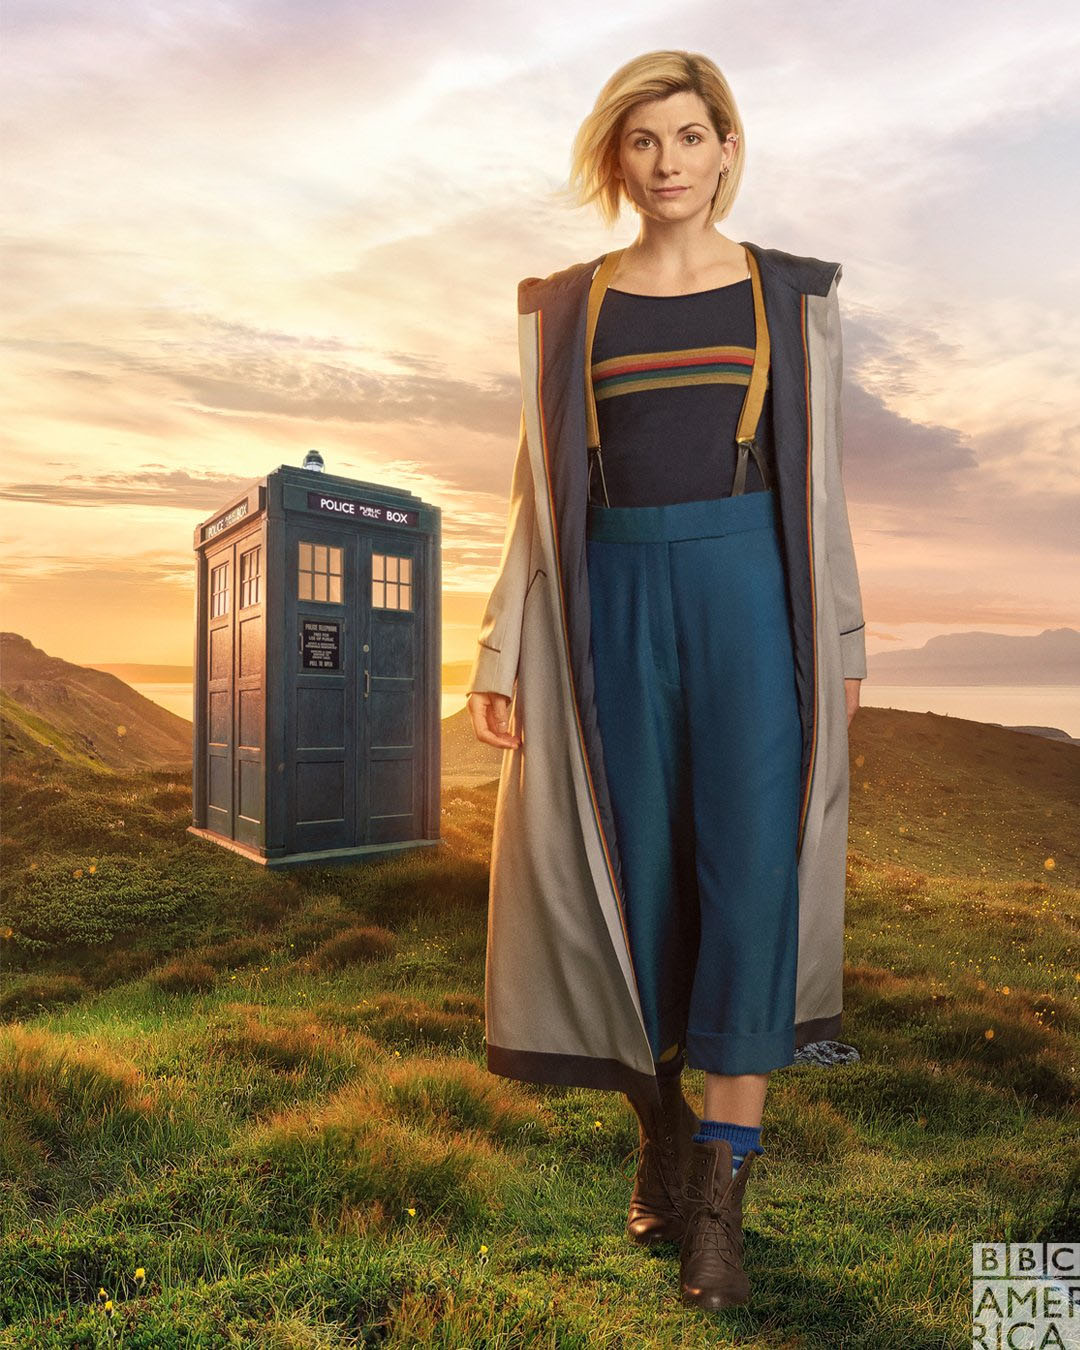 Doctor Who: First look at Jodie Whittaker in character